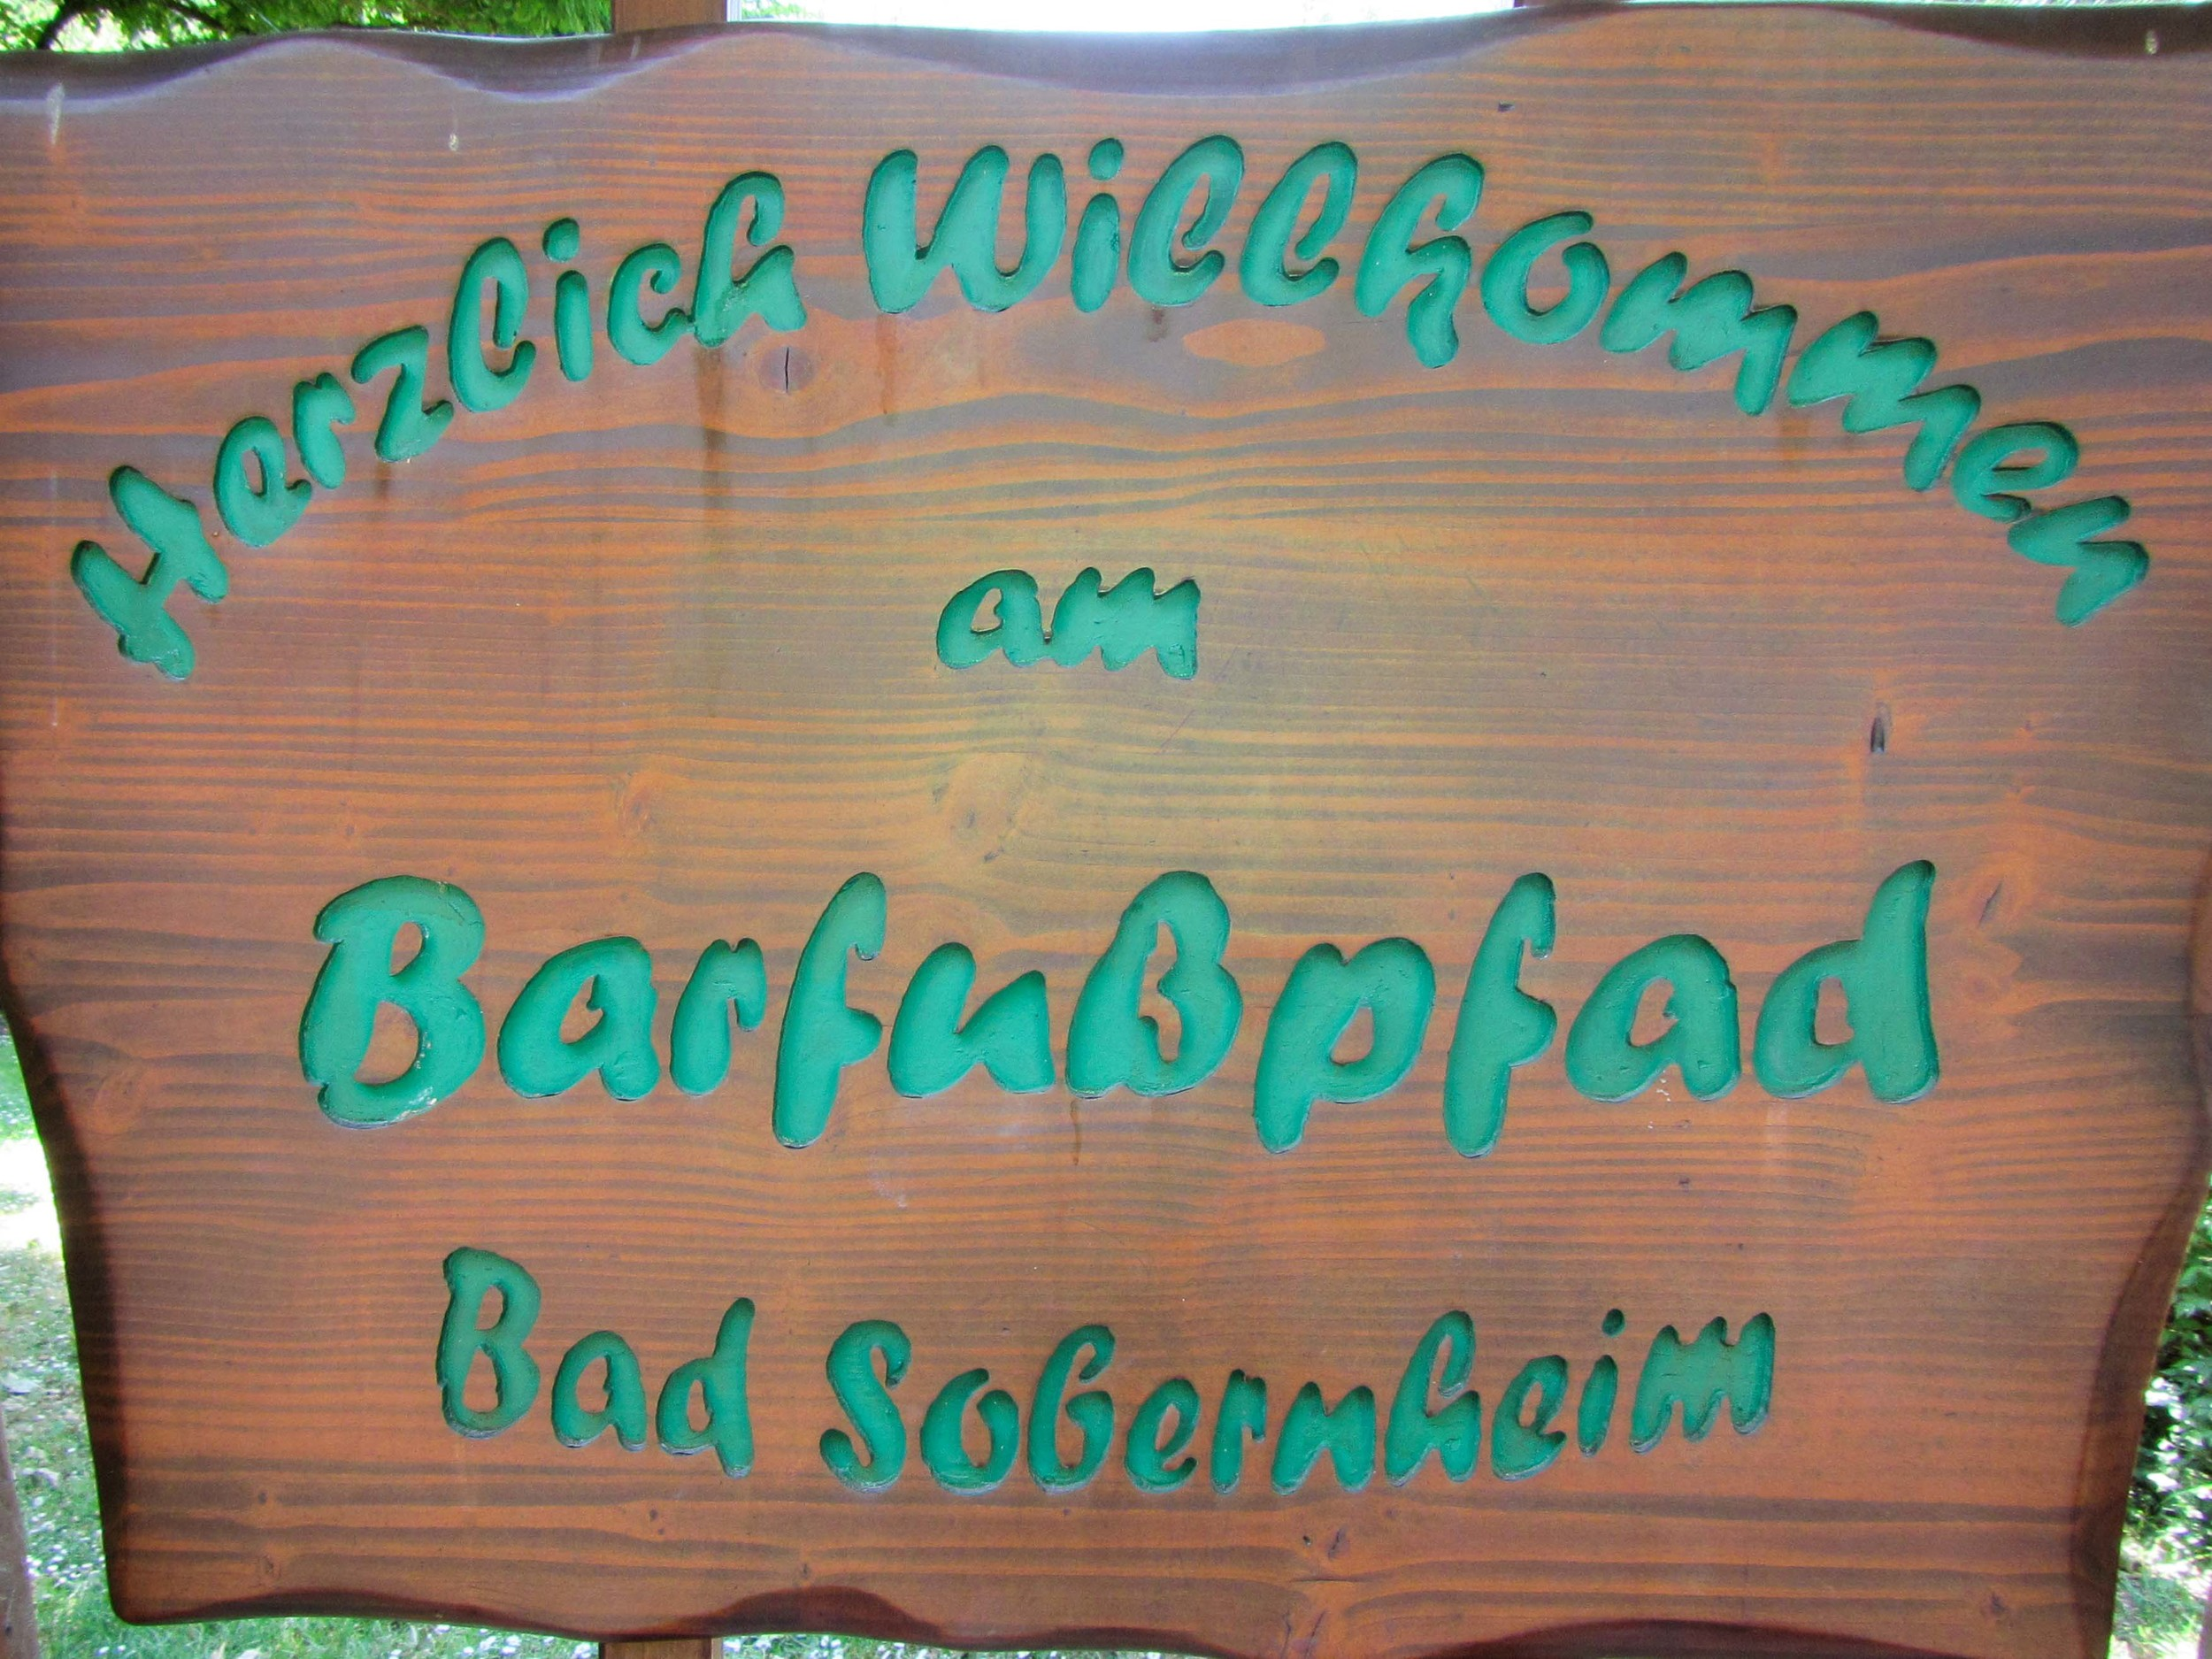 Warmest welcome to Barfußpfad